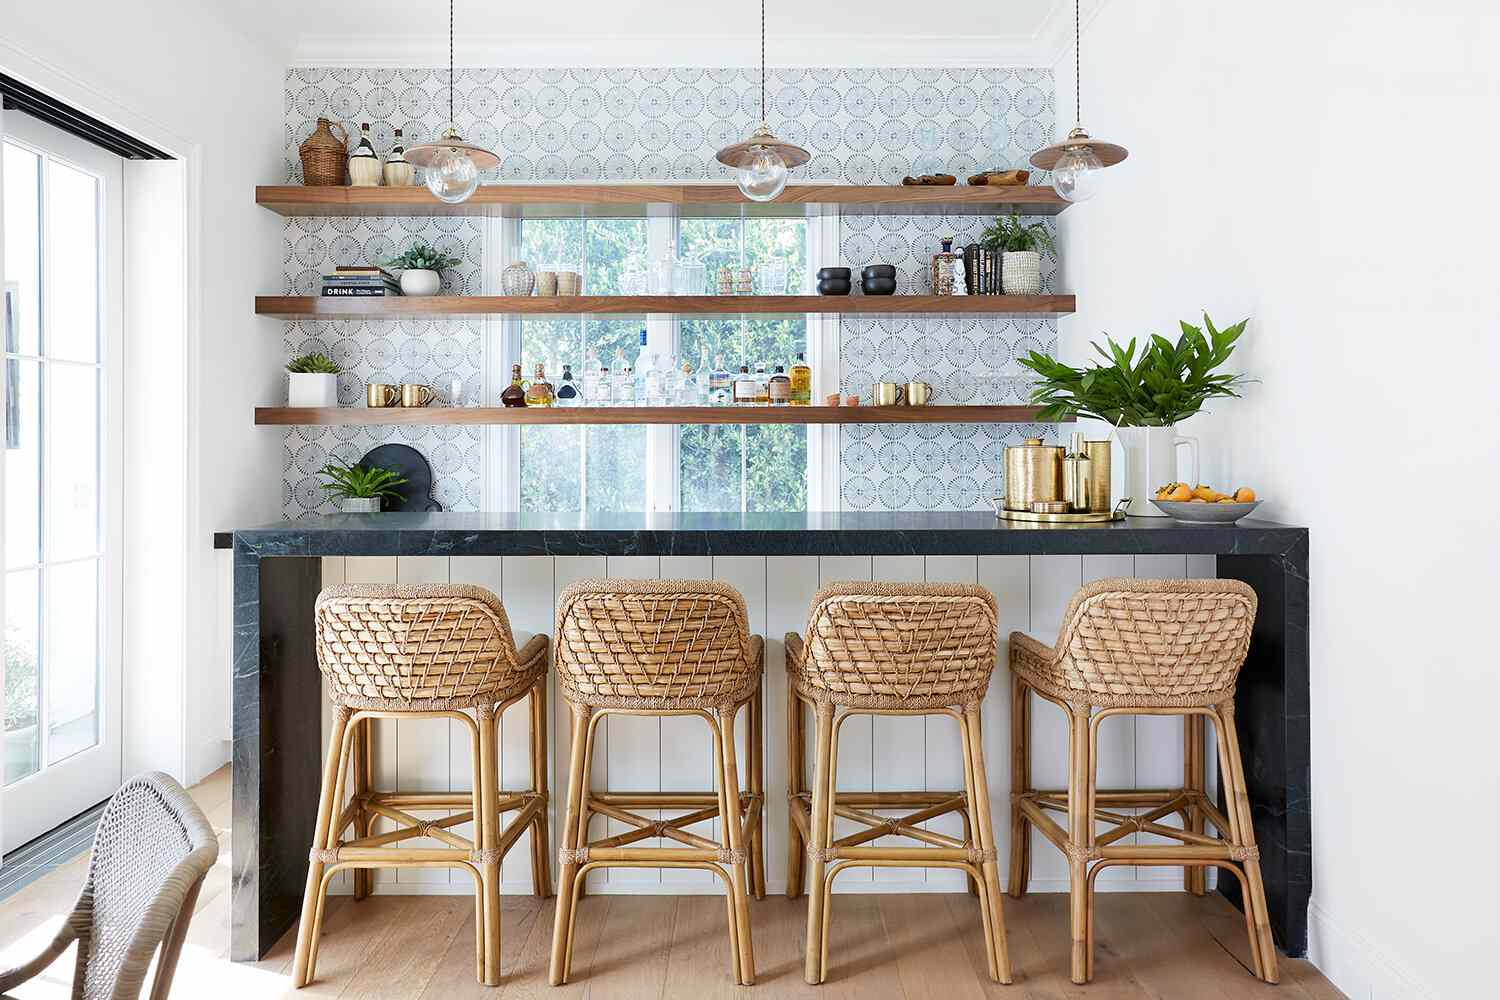 A wet bar lined with blue printed tiles